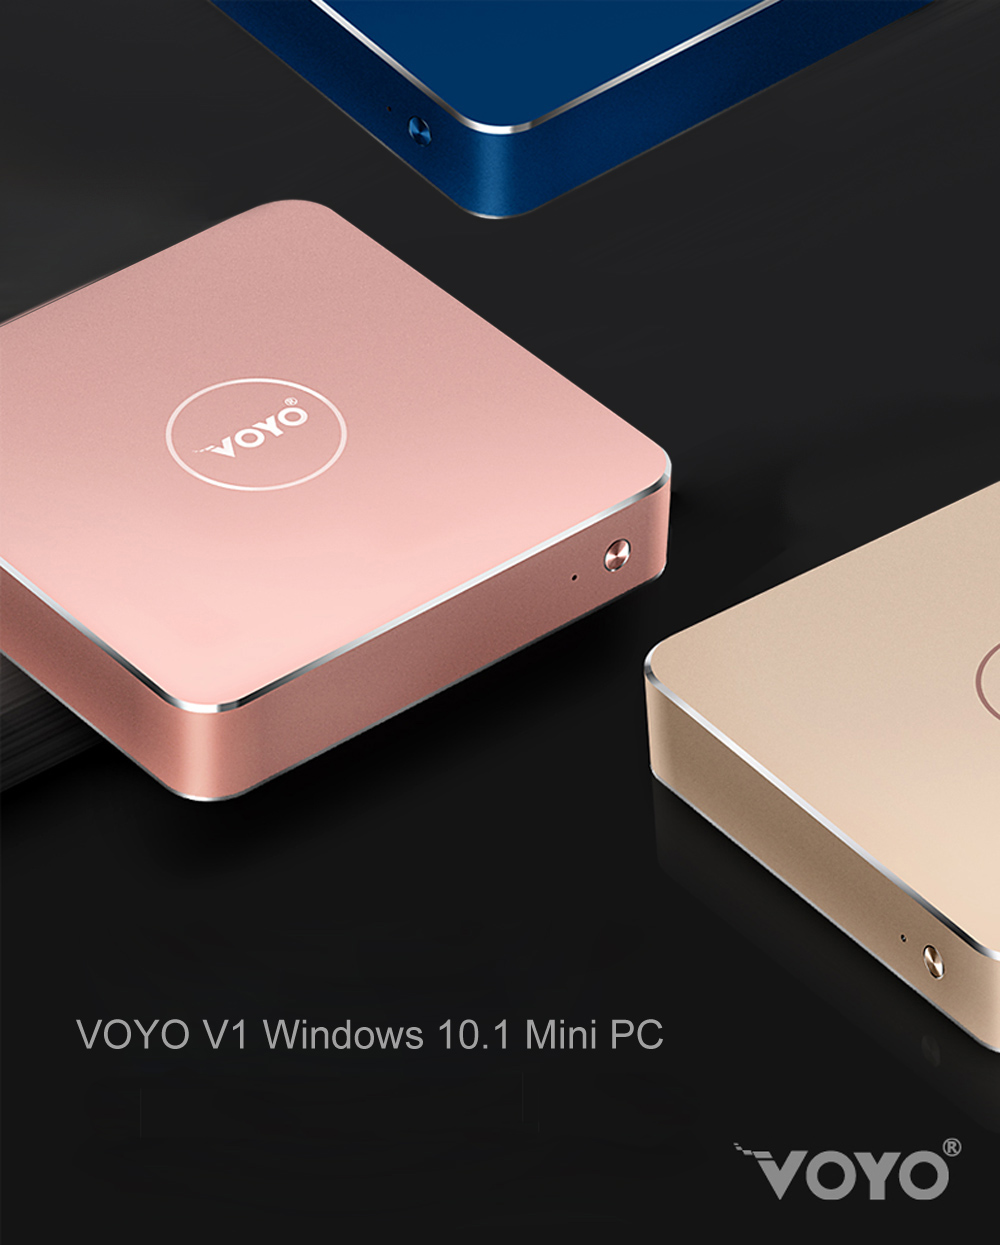 VOYO V1 Mini PC with Intel Celeron N3450 Quad Core CPU Windows 10.1 System Bluetooth 4.0 Connectivity 32G eMMC + 128G SSD ROM